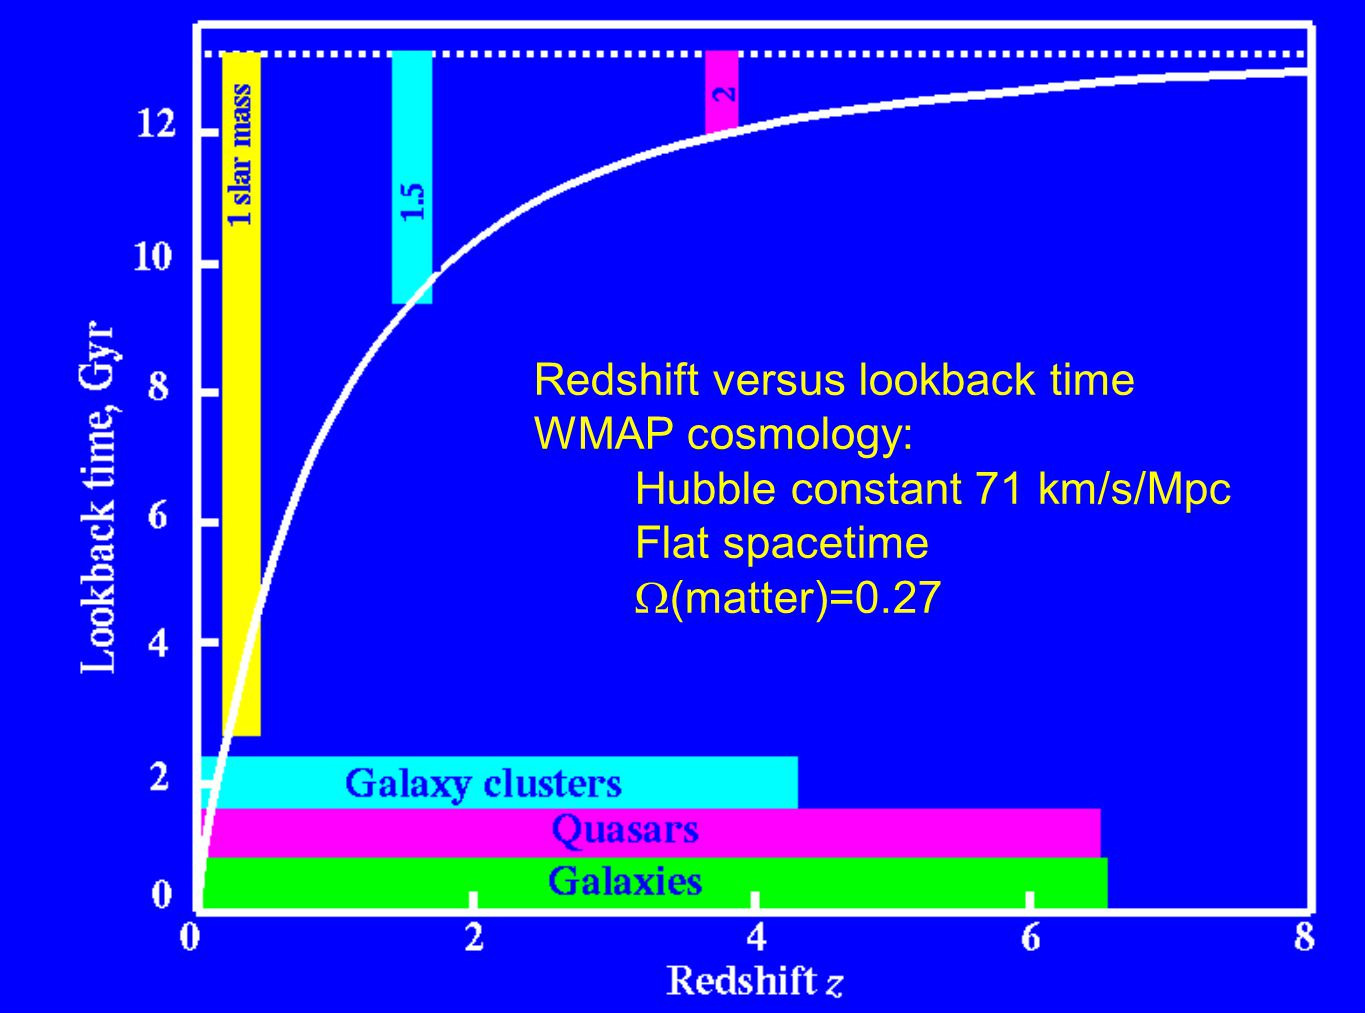 Galaxy Evolution - Cosmic History Galaxies change with redshift, reflecting development in their stellar content, gas content, and dynamical structure.